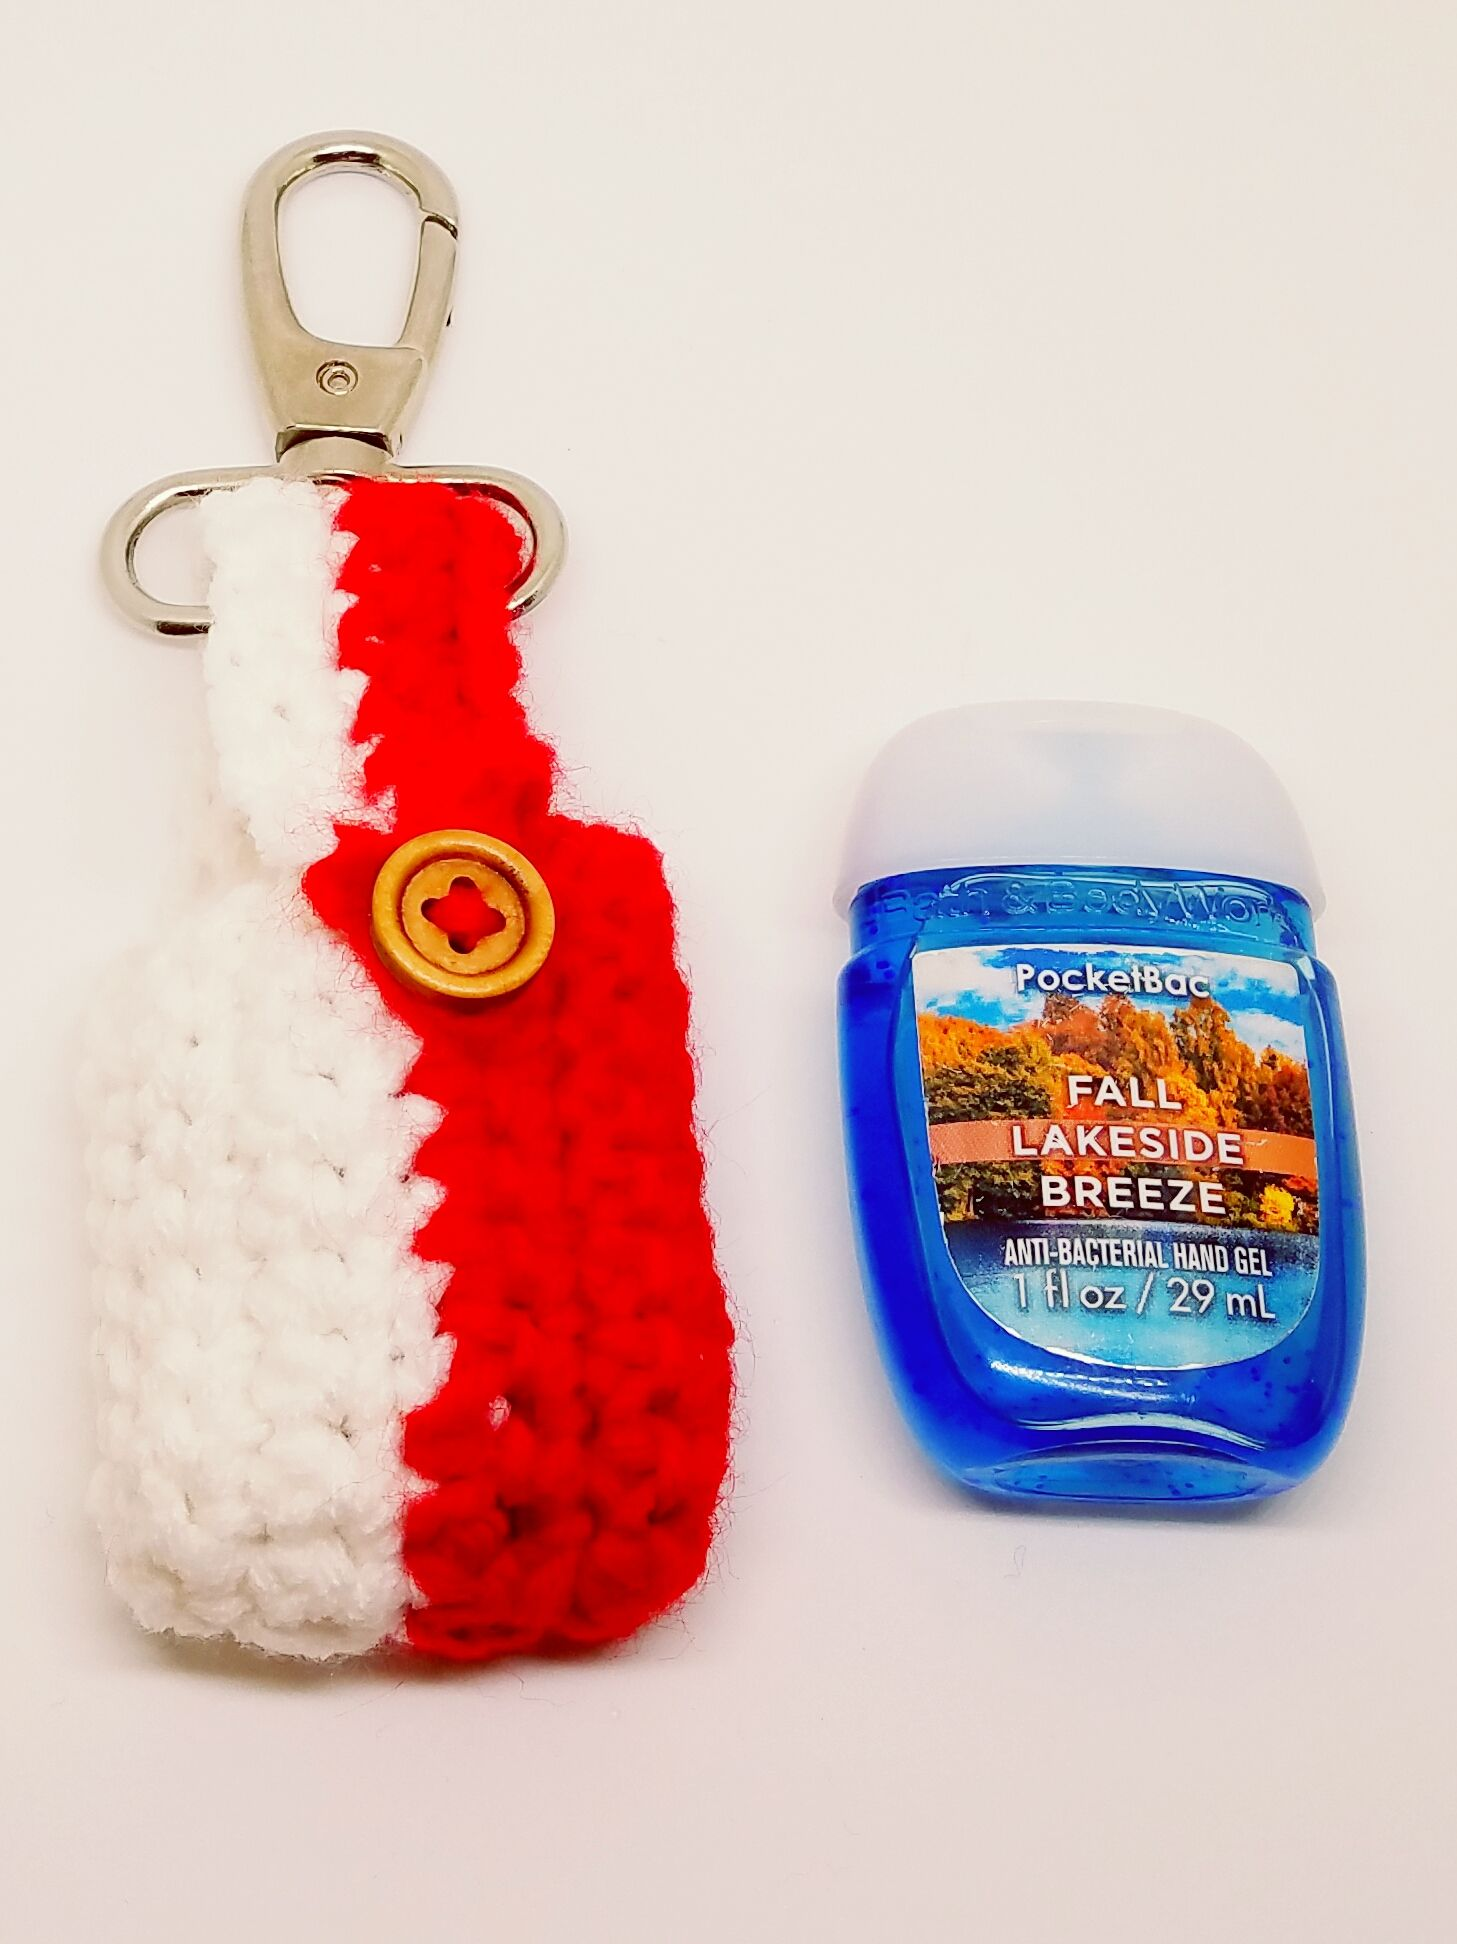 These Hand Sanitizer S Look Like They Smell Very Good I Want To